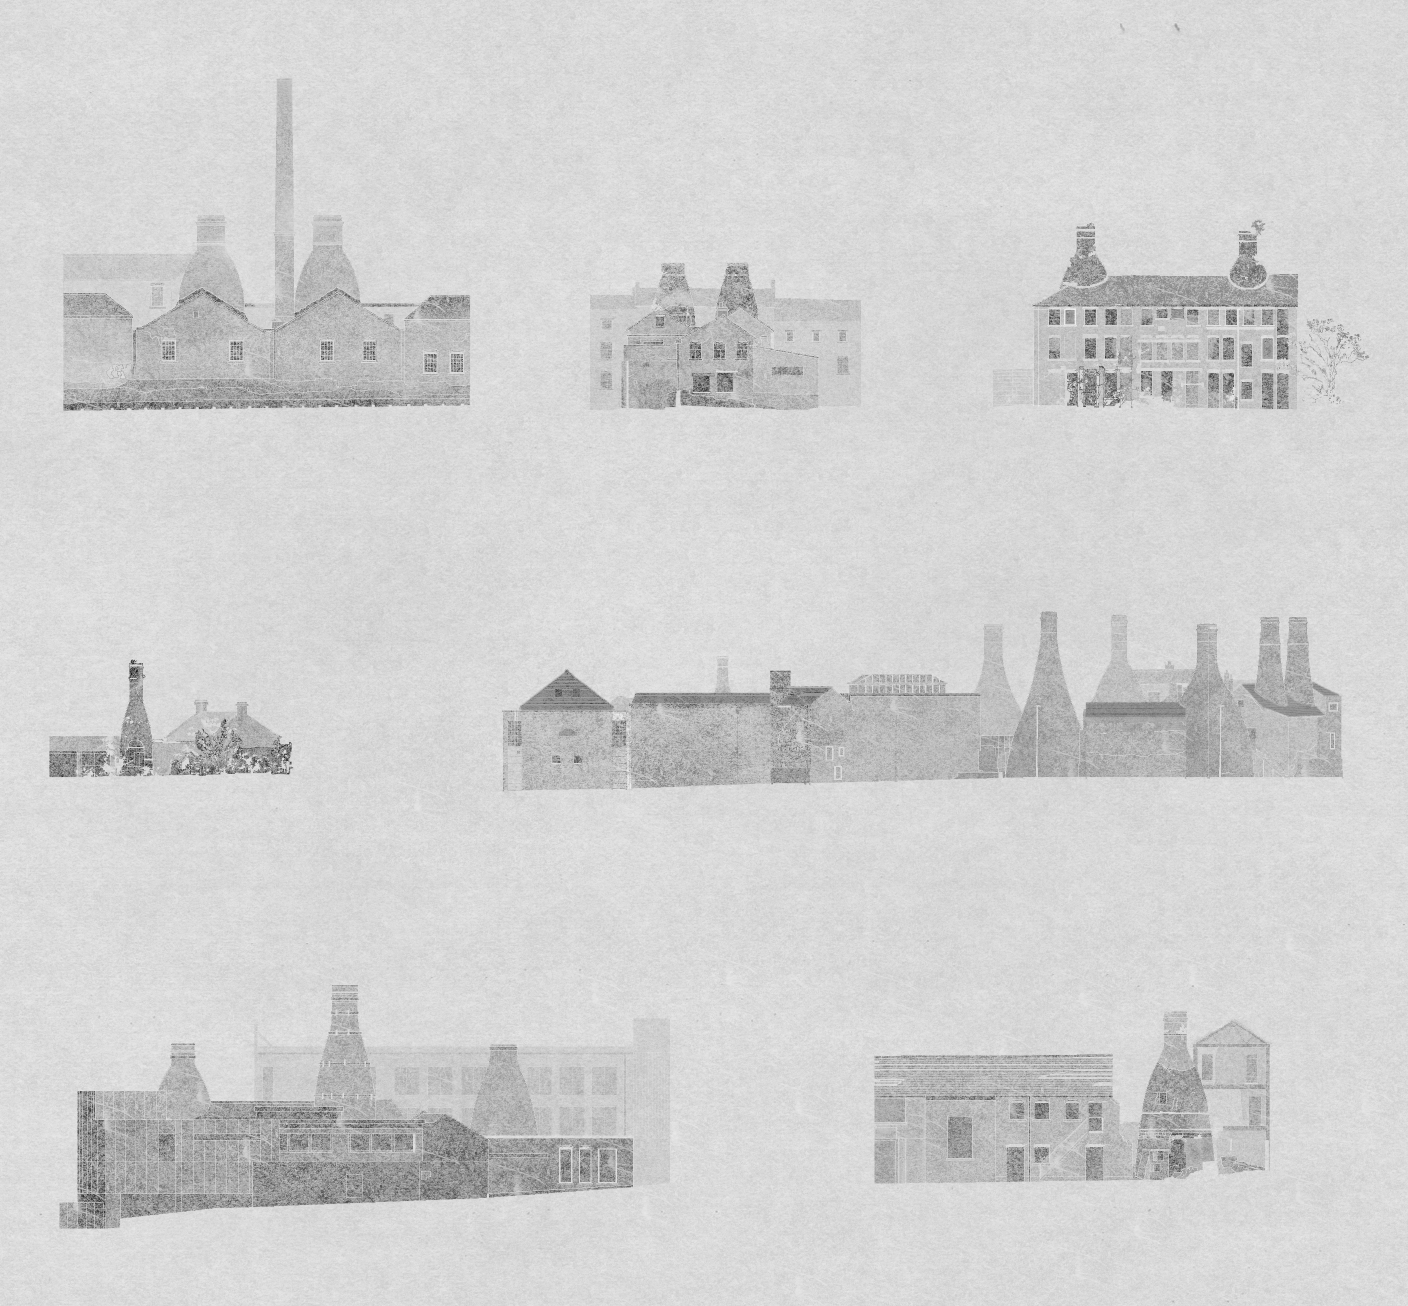 Historical Analysis of the Existing Potbanks and Bottle Ovens